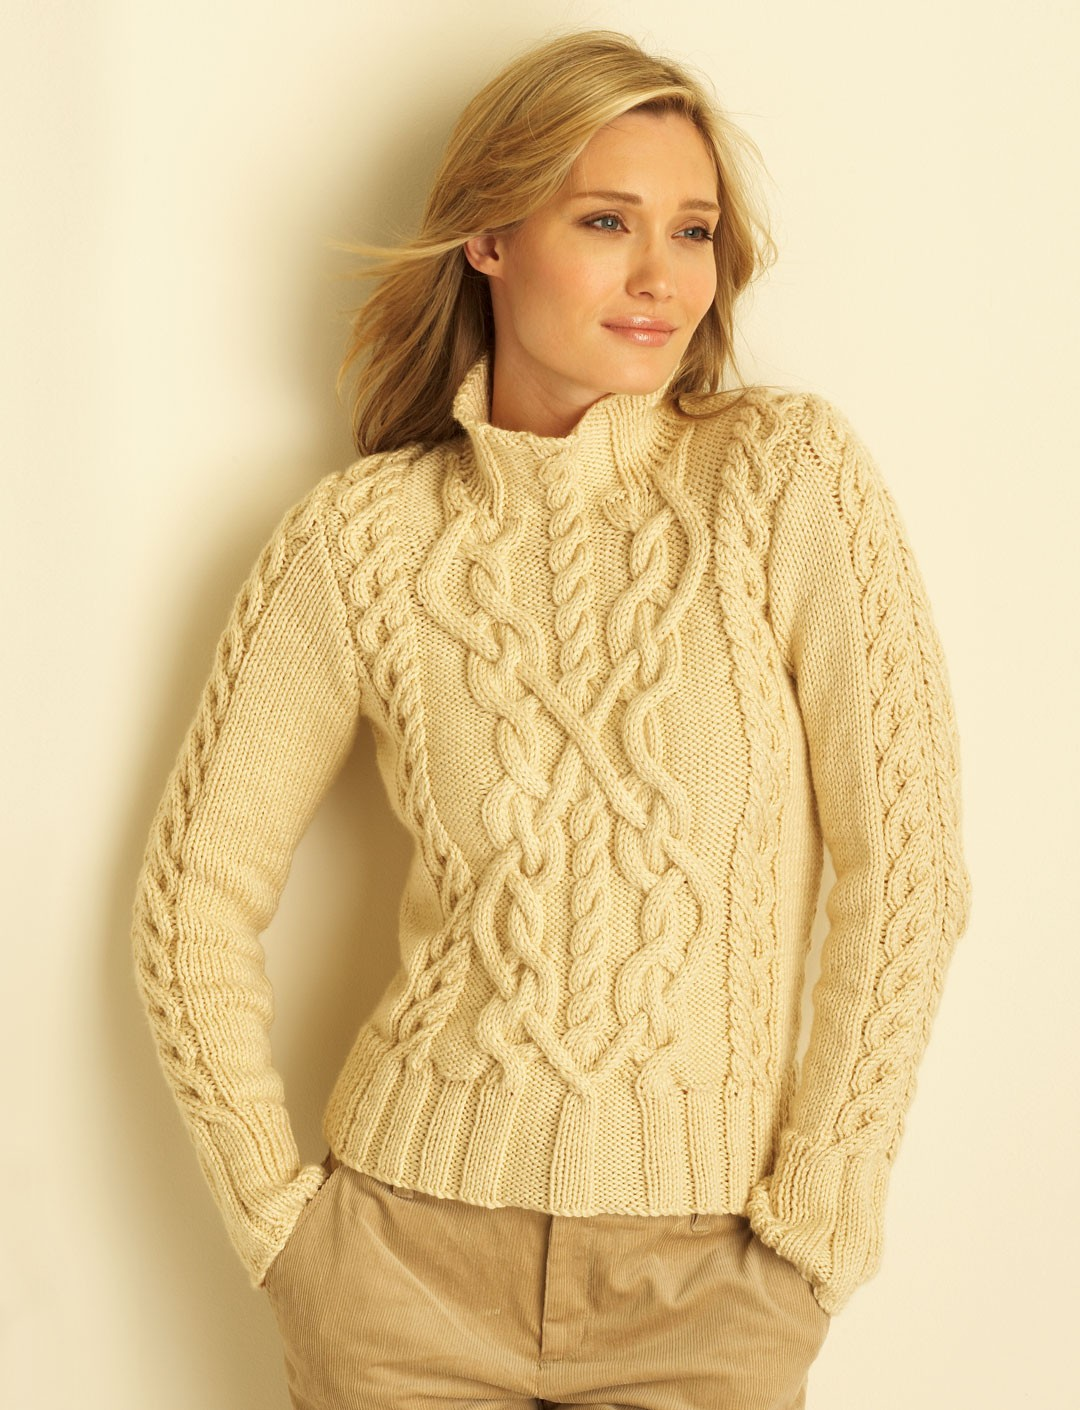 Free Crochet Pattern For Cabled Sweater : Cable Sweater - Patterns Yarnspirations